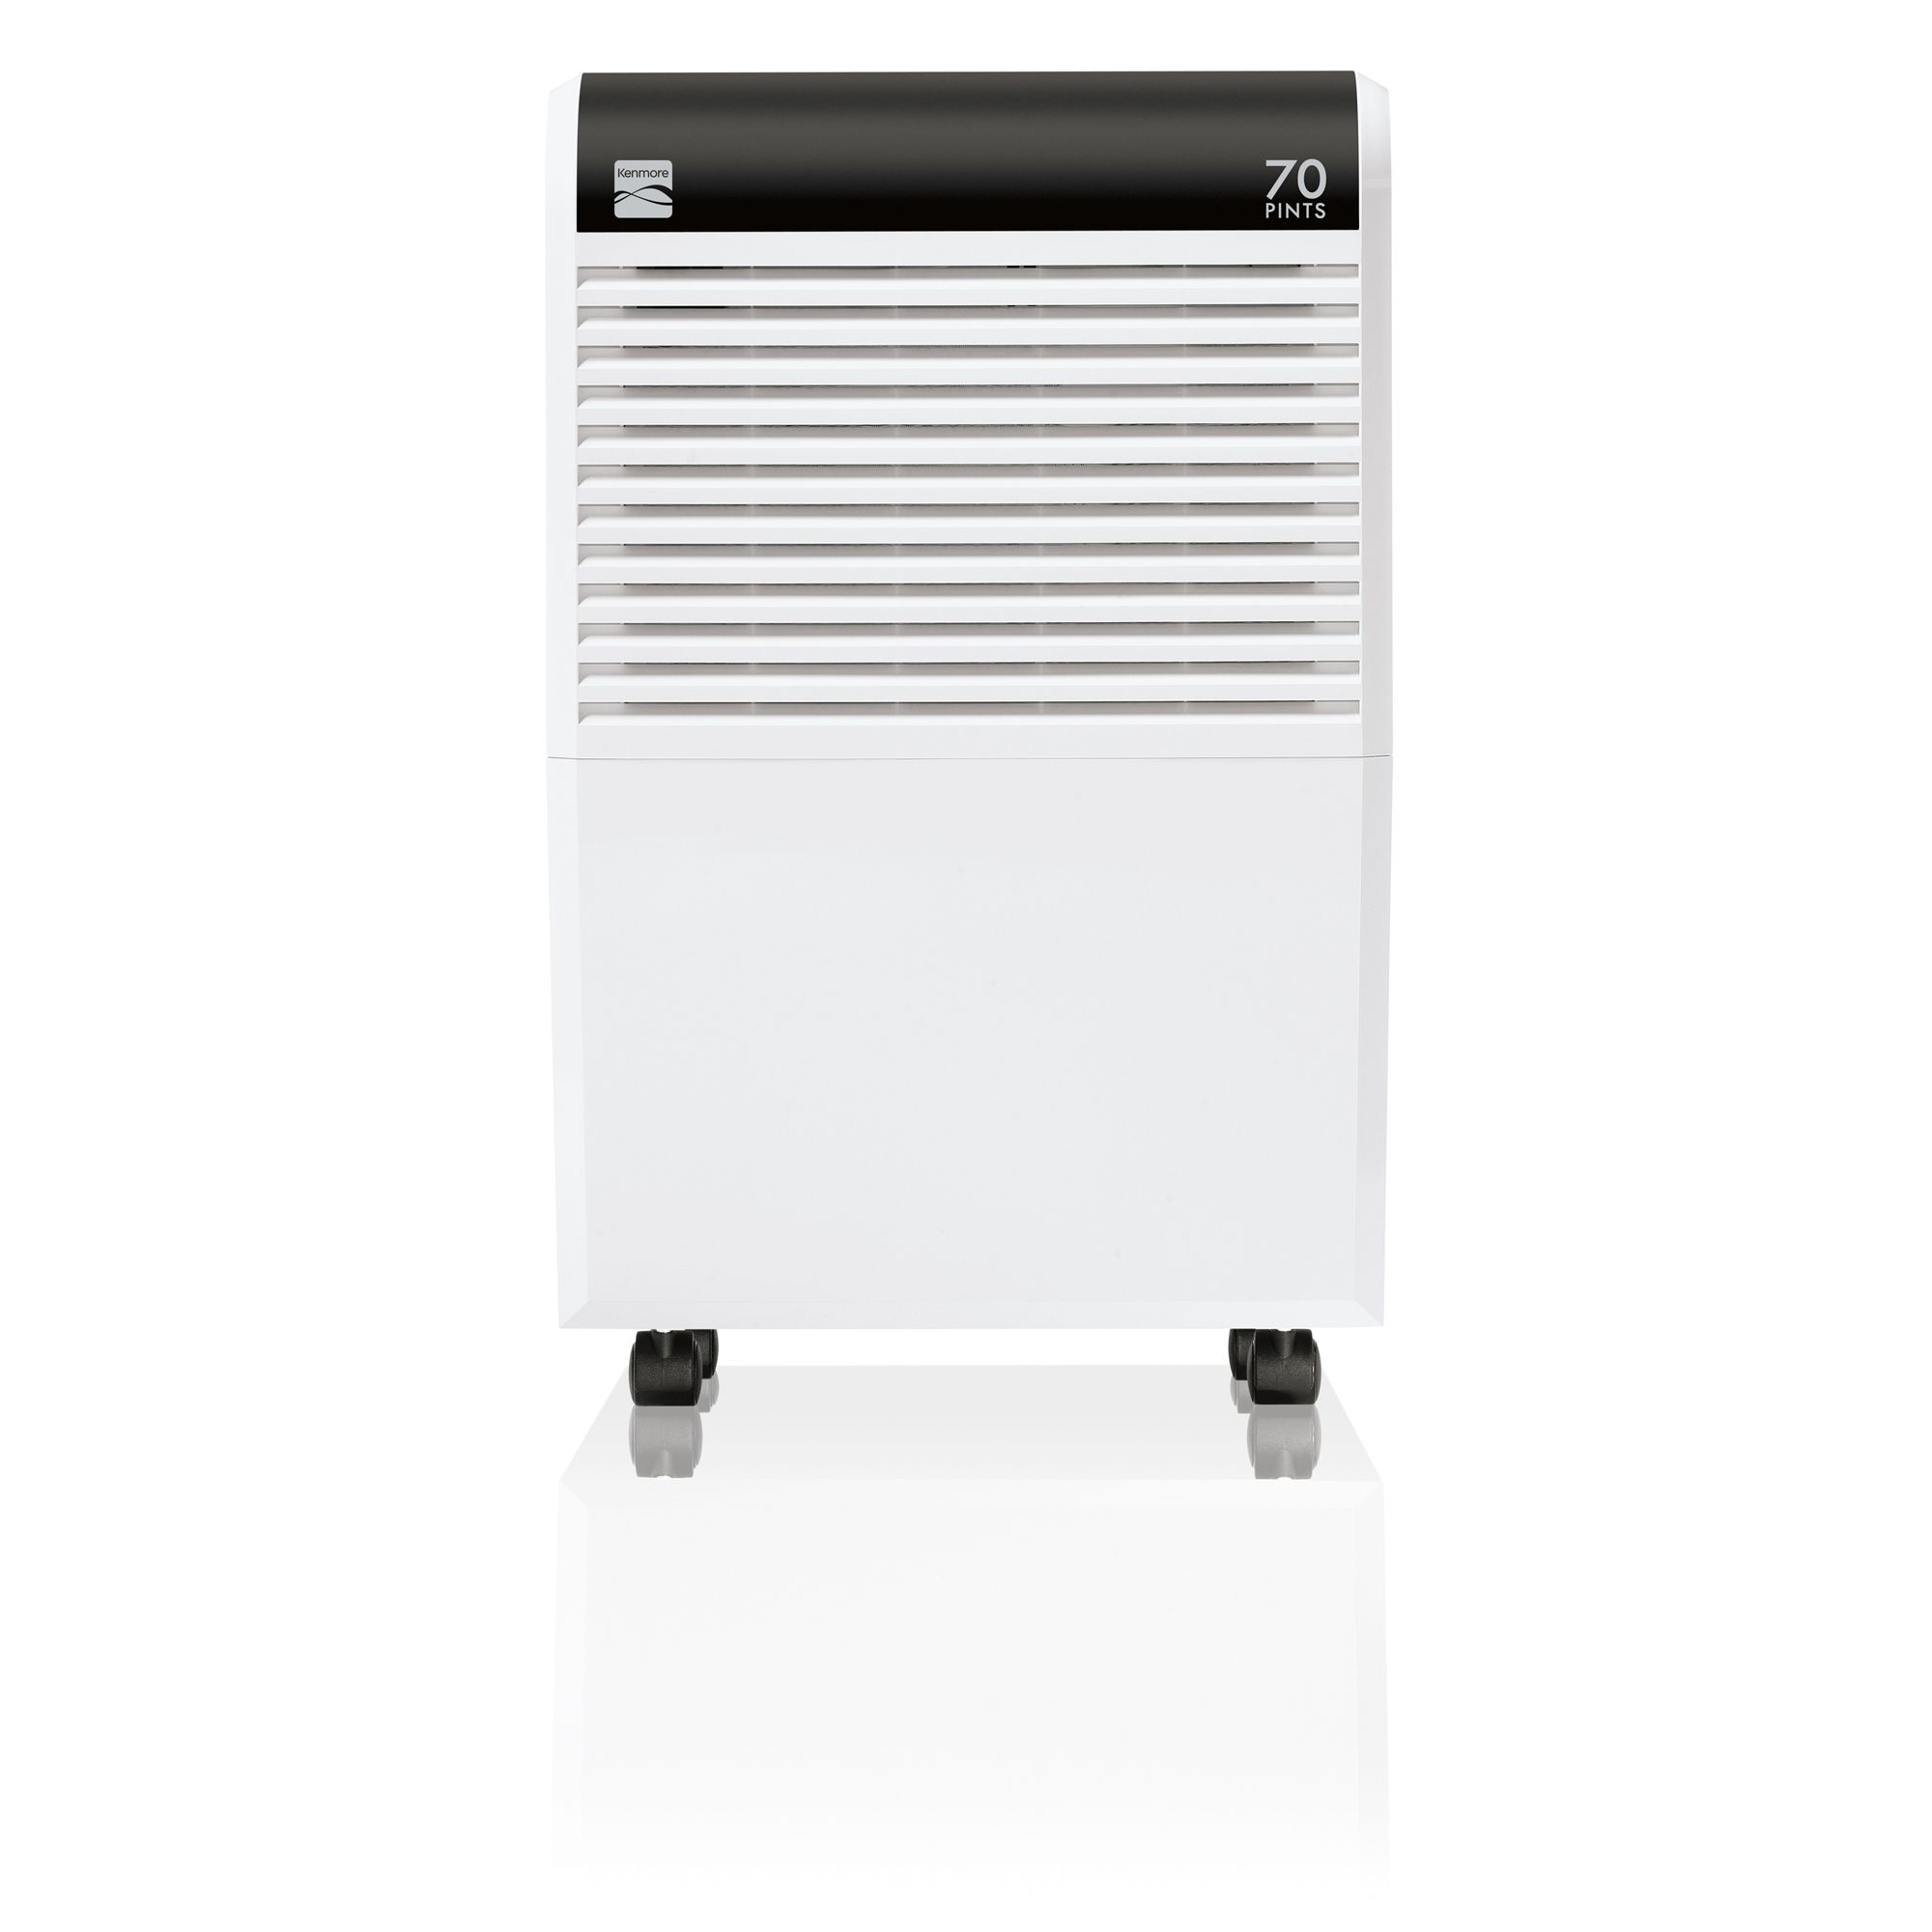 Kenmore 70-pint Dehumidifier with Electronic Controls